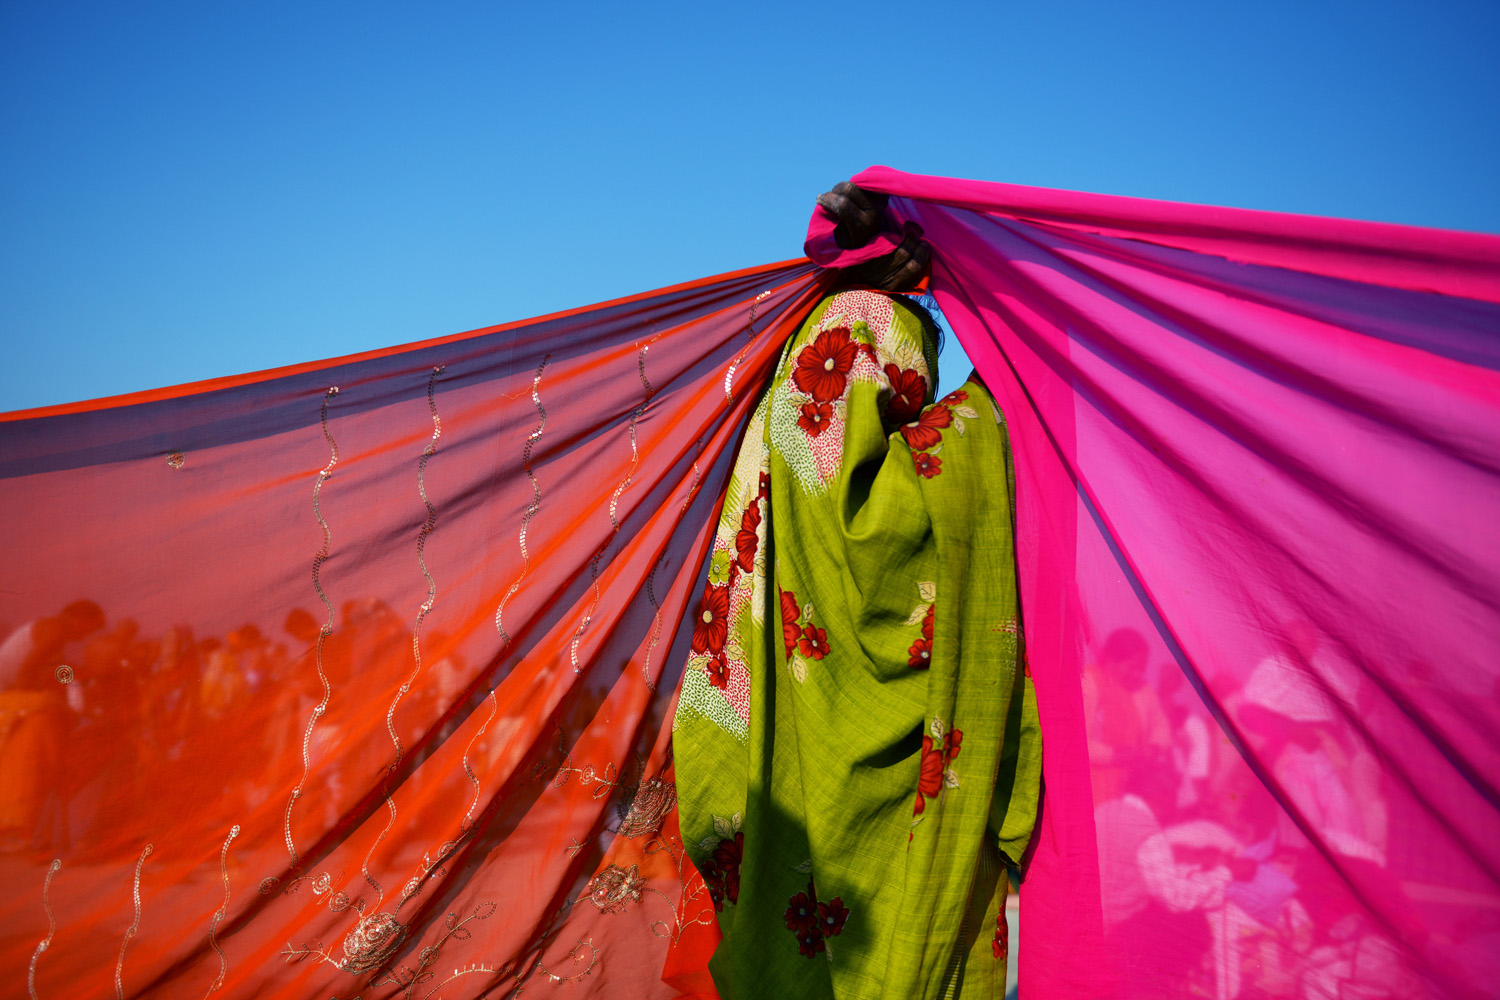 Feb. 10, 2013. An Indian woman holds up the corners of two saris to dry on the banks of the Sangam or confluence of the Yamuna, Ganges and mythical Saraswati rivers at the Kumbh Mela in Allahabad.